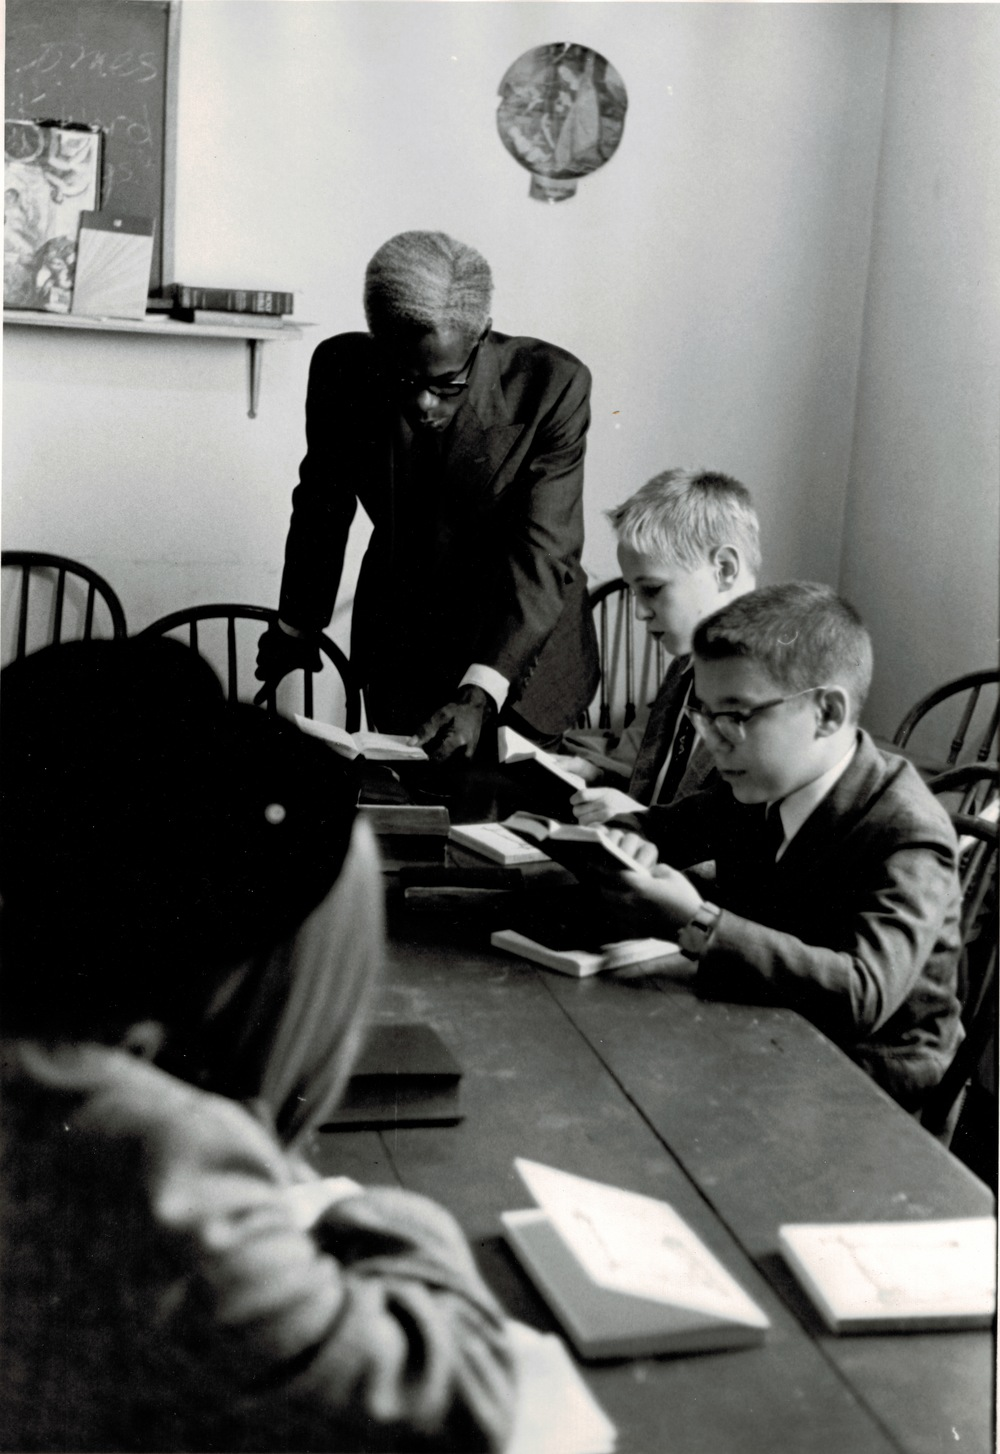 Albert Powell teaching Sunday School, 1962.